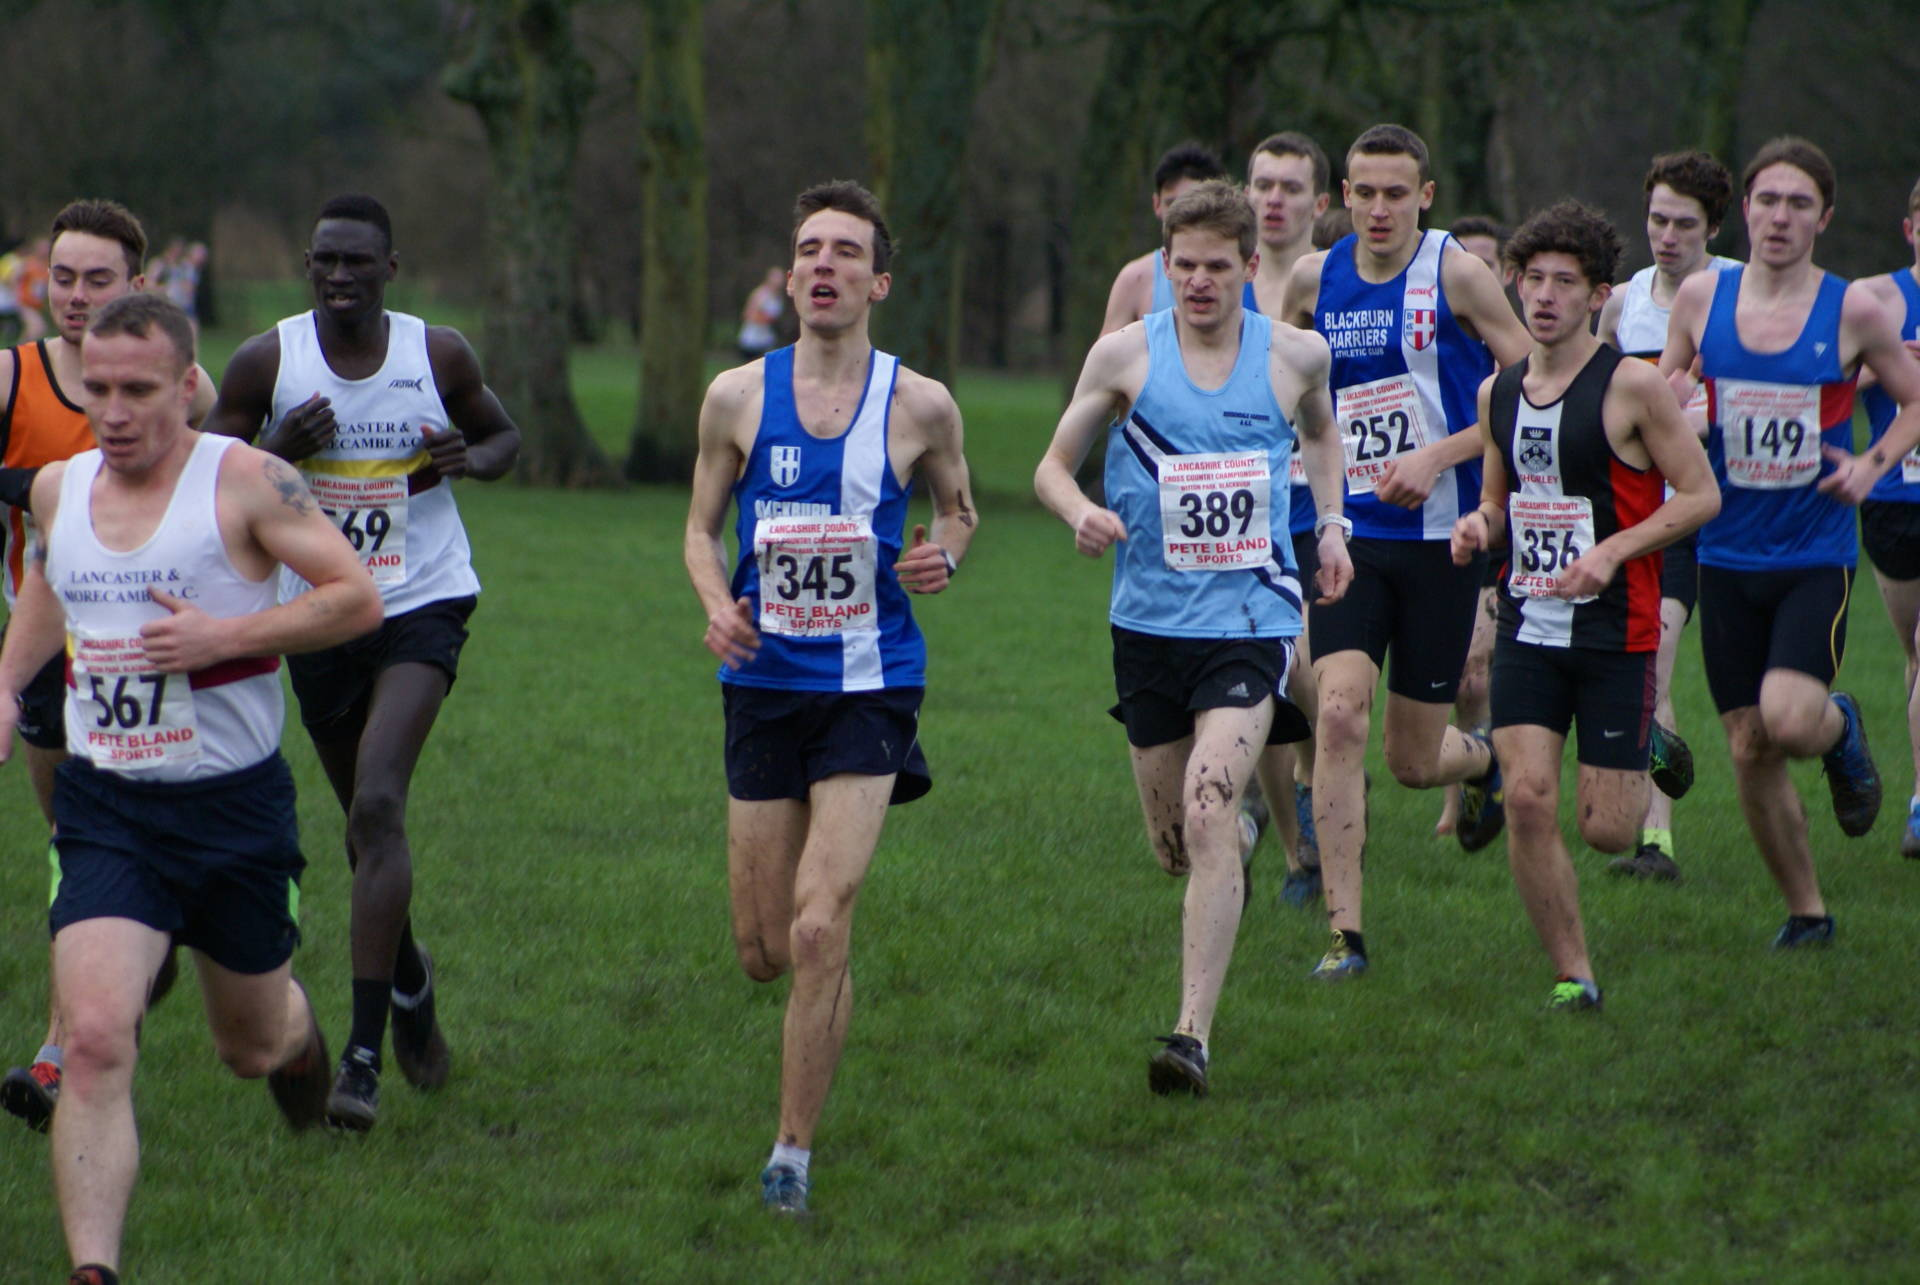 Harriers win sixteen Team & Individual Medals at Lancashire County XC Championships